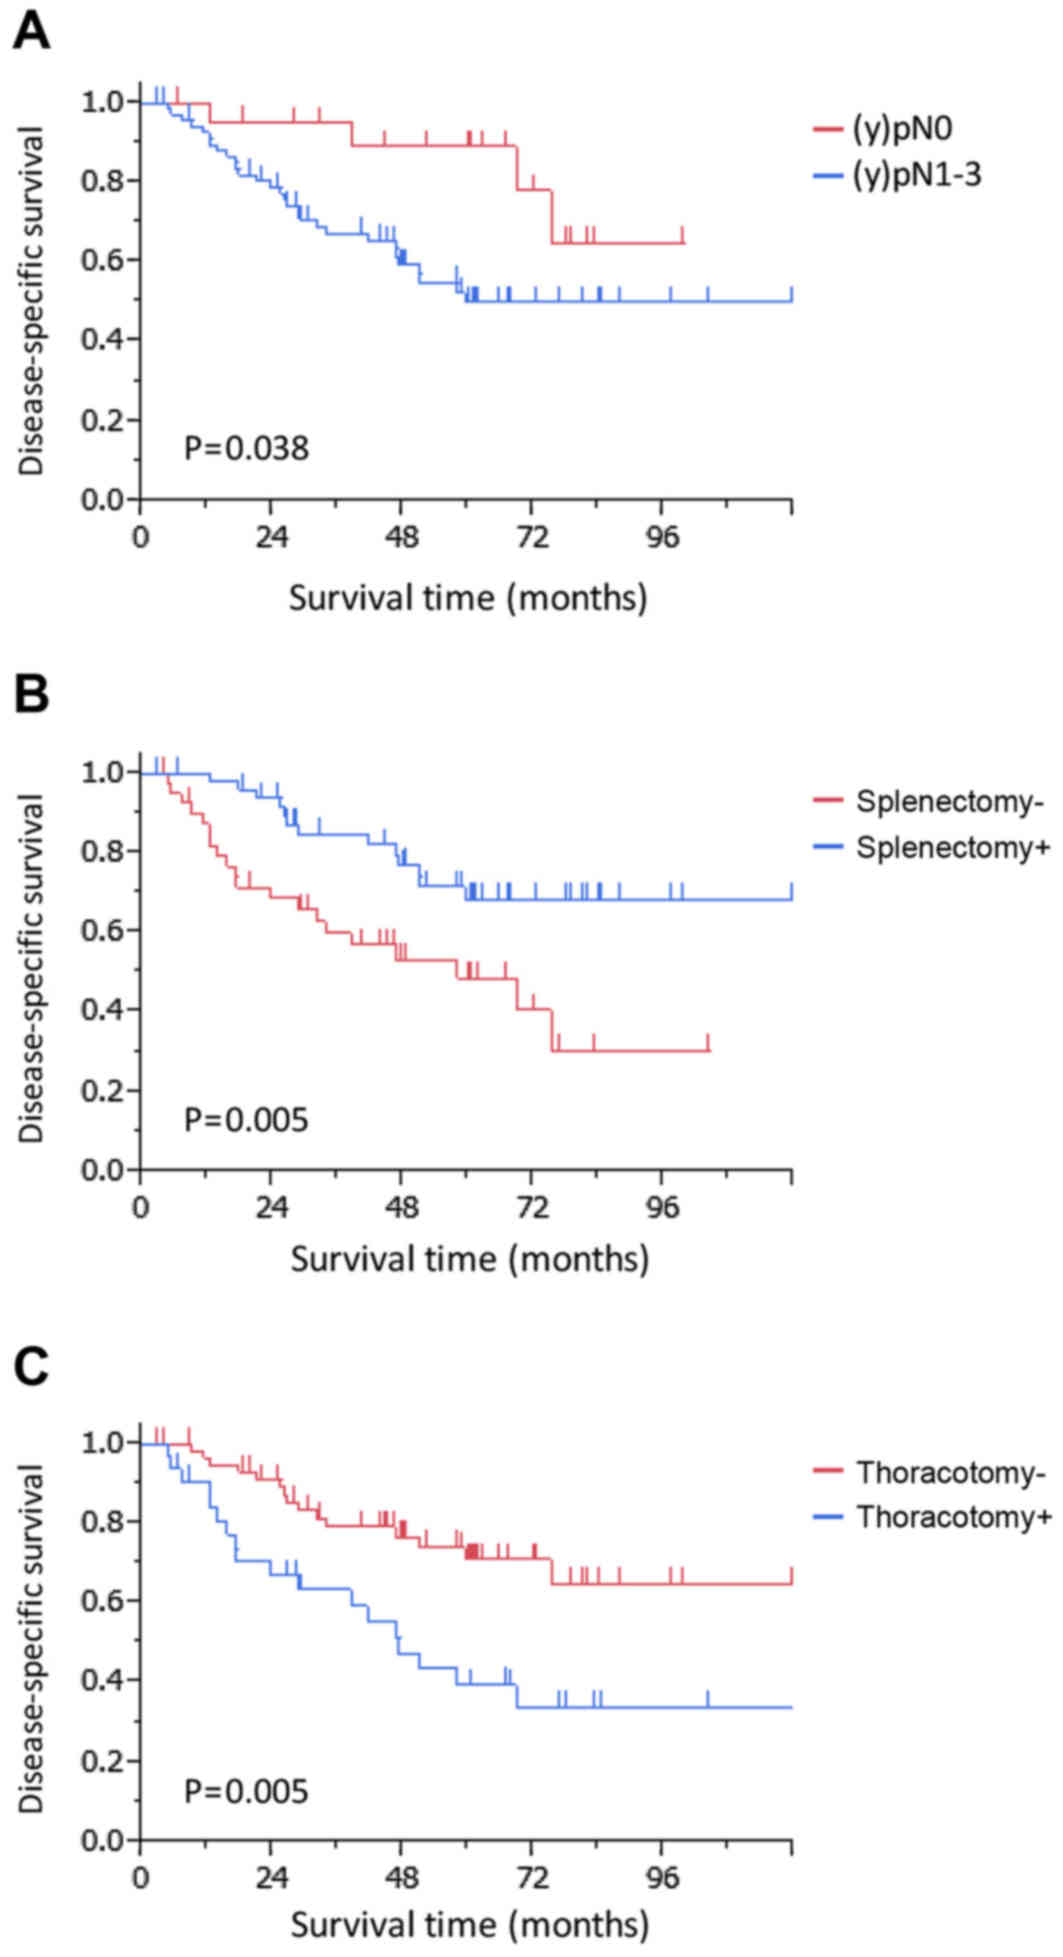 Disease Specific Survival Rates According To The Independent Prognostic Factors Namely A Presence Of Tumors Clified As Y Pn B Performance